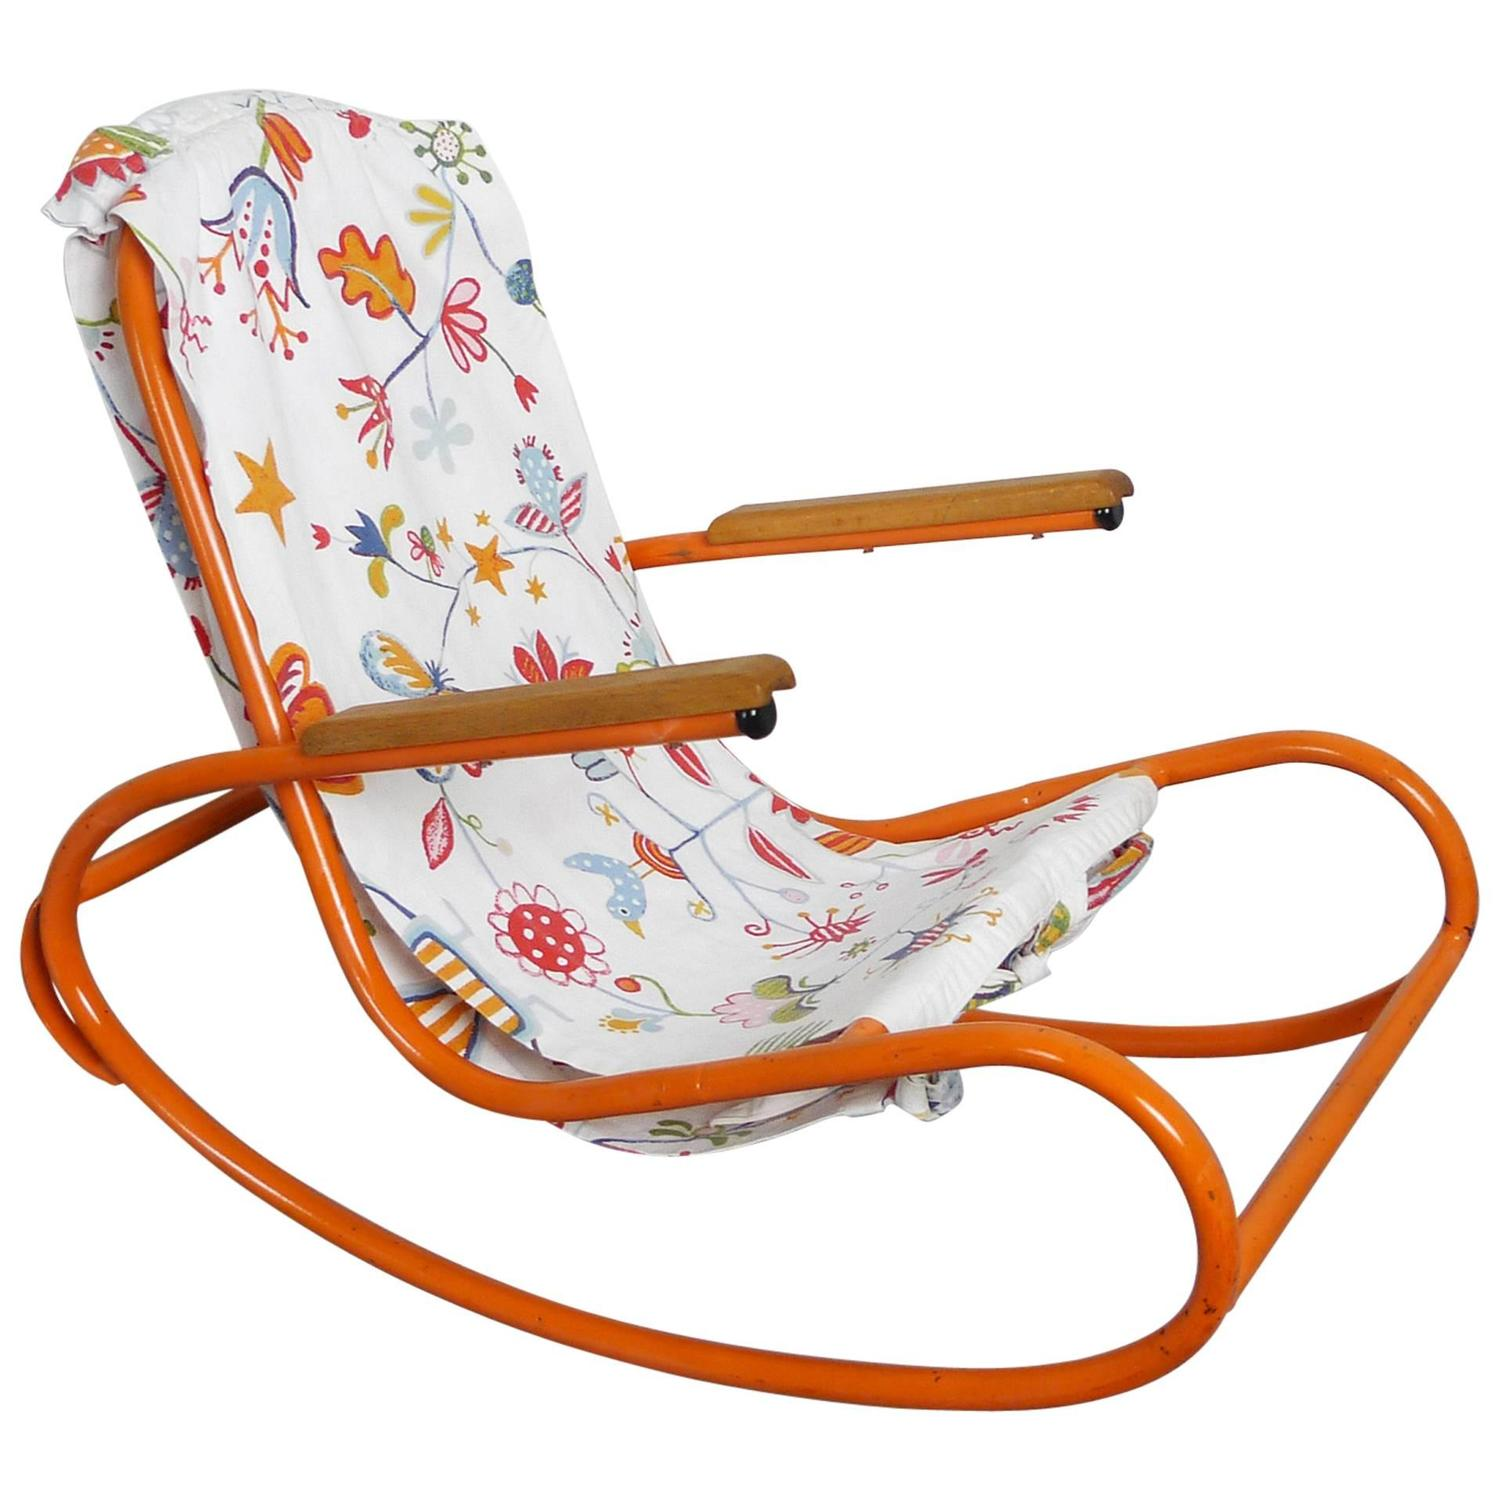 Rocking Chair For A Child